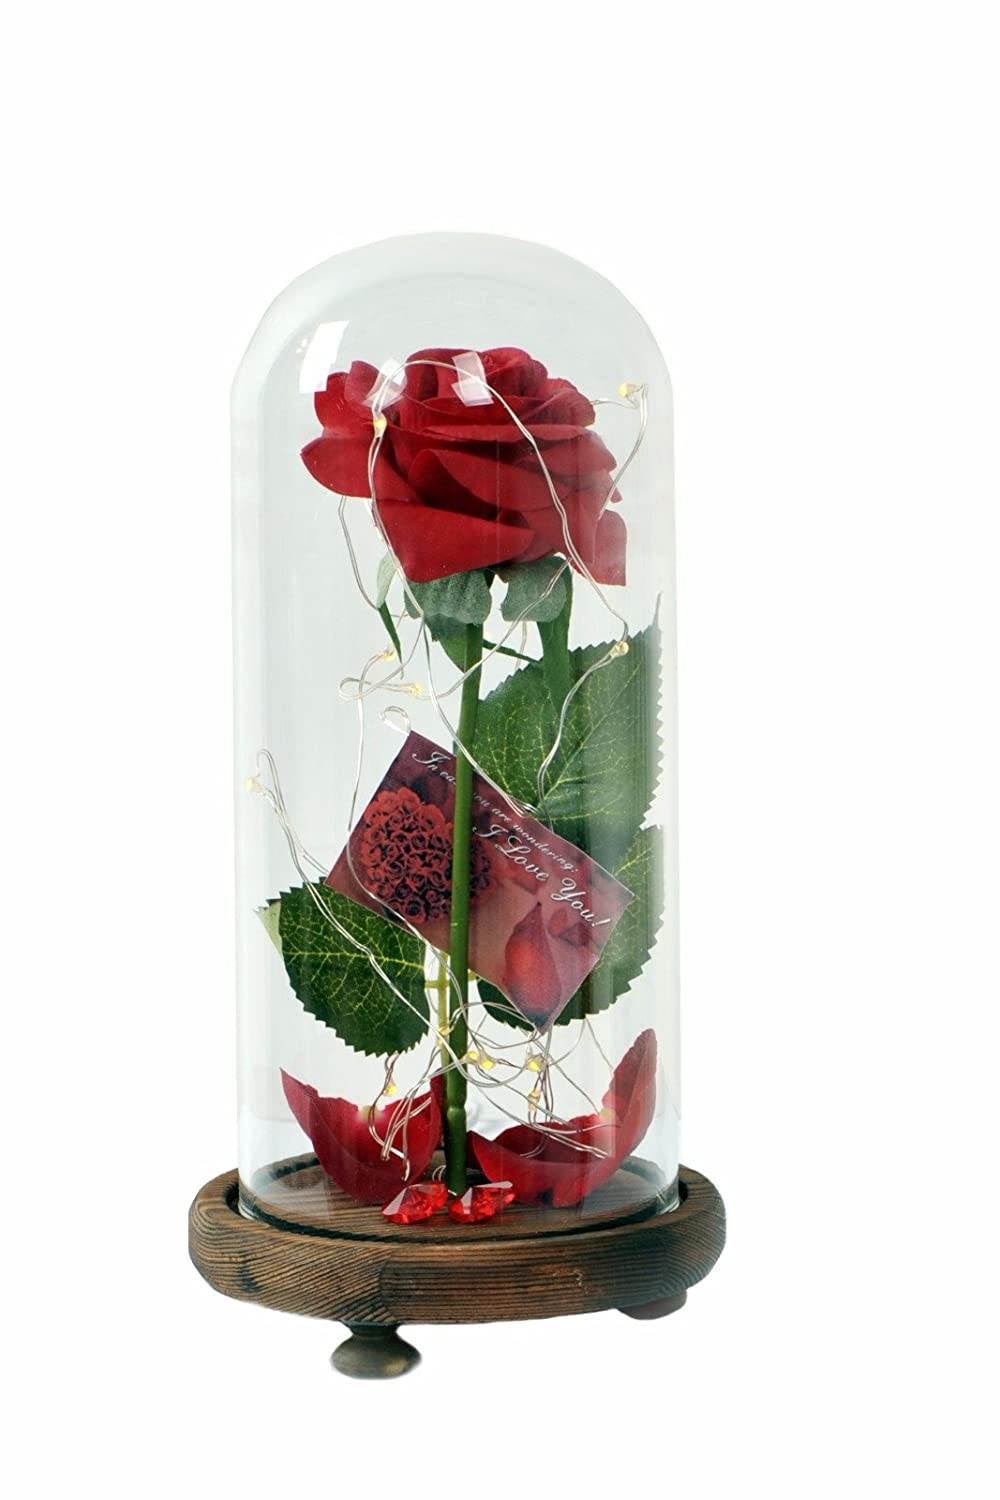 beauty magic rose that turns every beast in our lives into something beautiful, it's an artificial red rose with LED light & Fallen Petals In a glass dome & wooden base with love card & a small heart shape glass yajouri-(1996)ltd